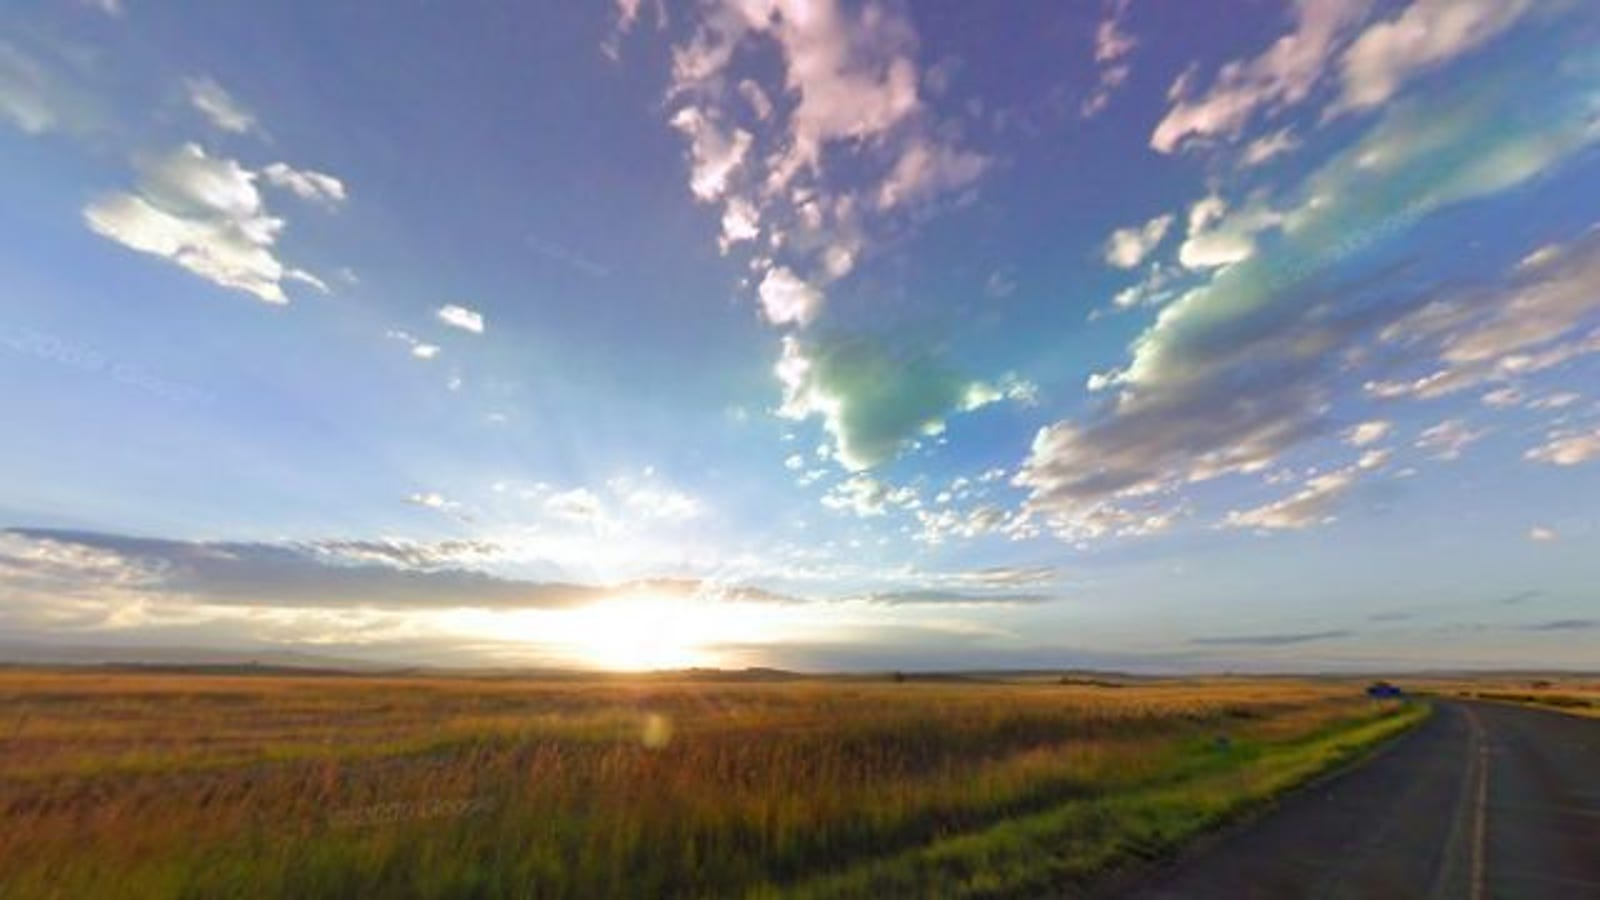 Get a Speeding Bullet Eye's View of Anywhere in the World With a Street View Hyperlapse Maker